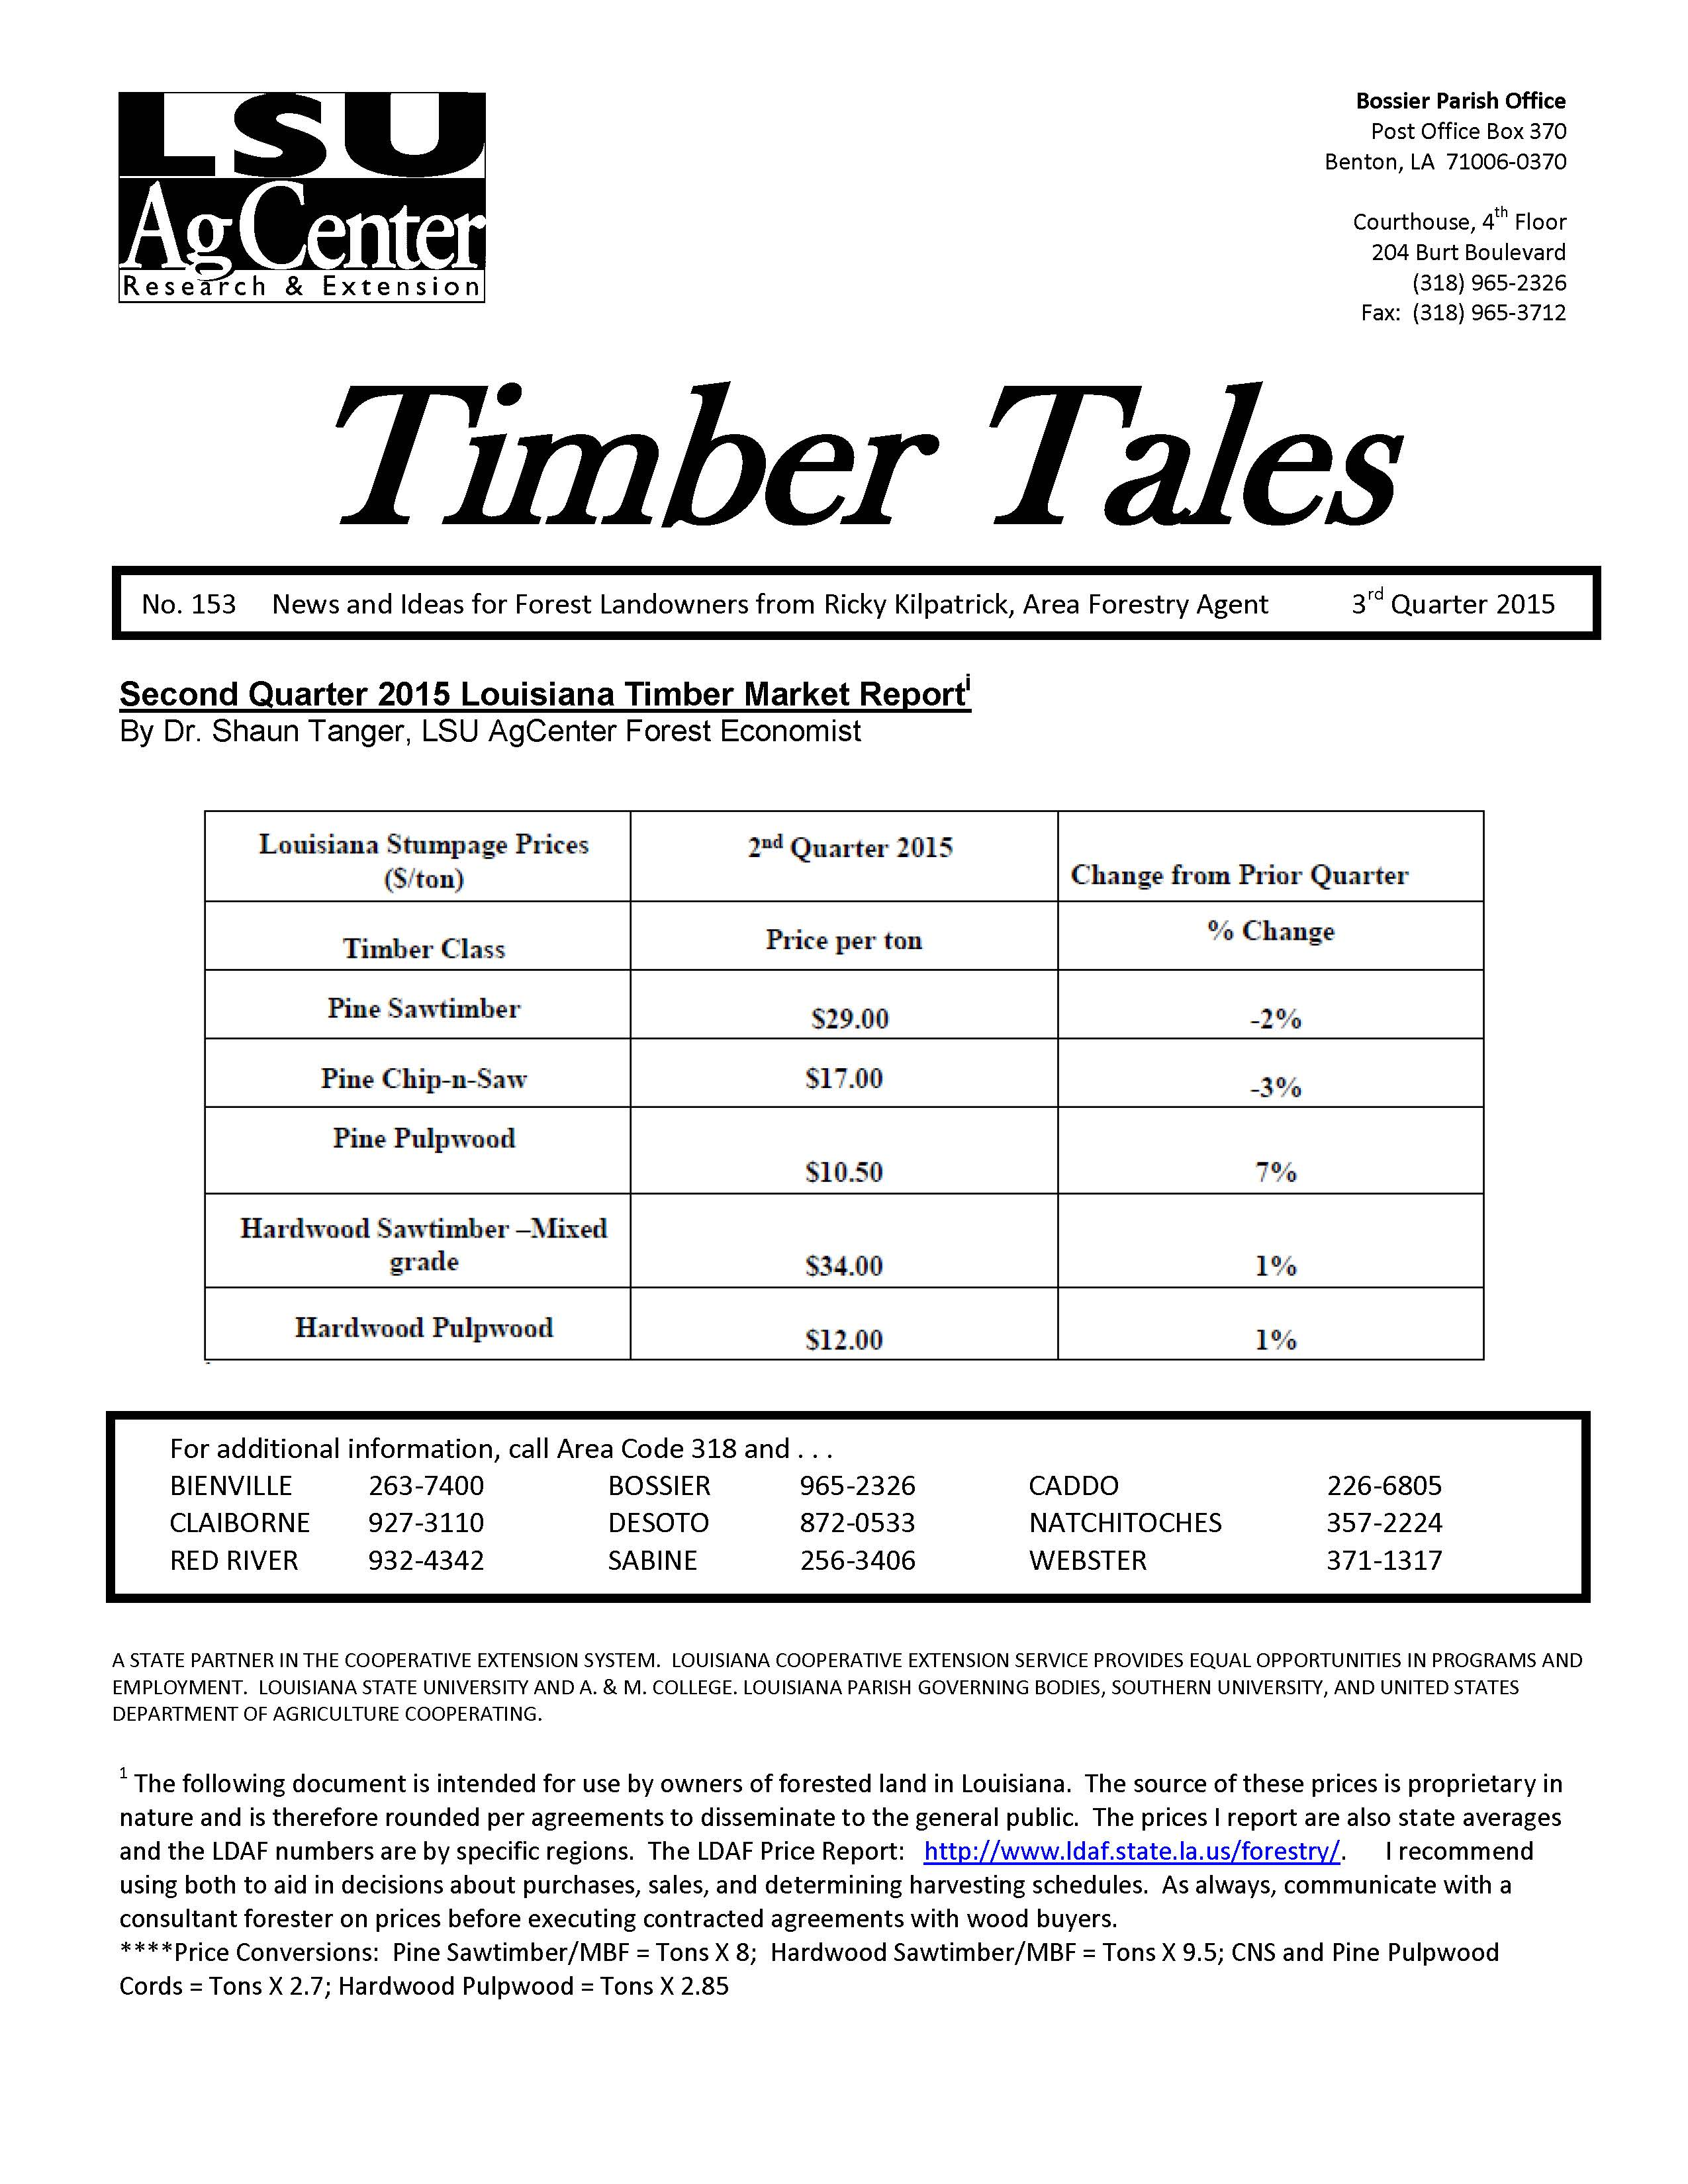 3rd Quarter Timber Tales Newsletter